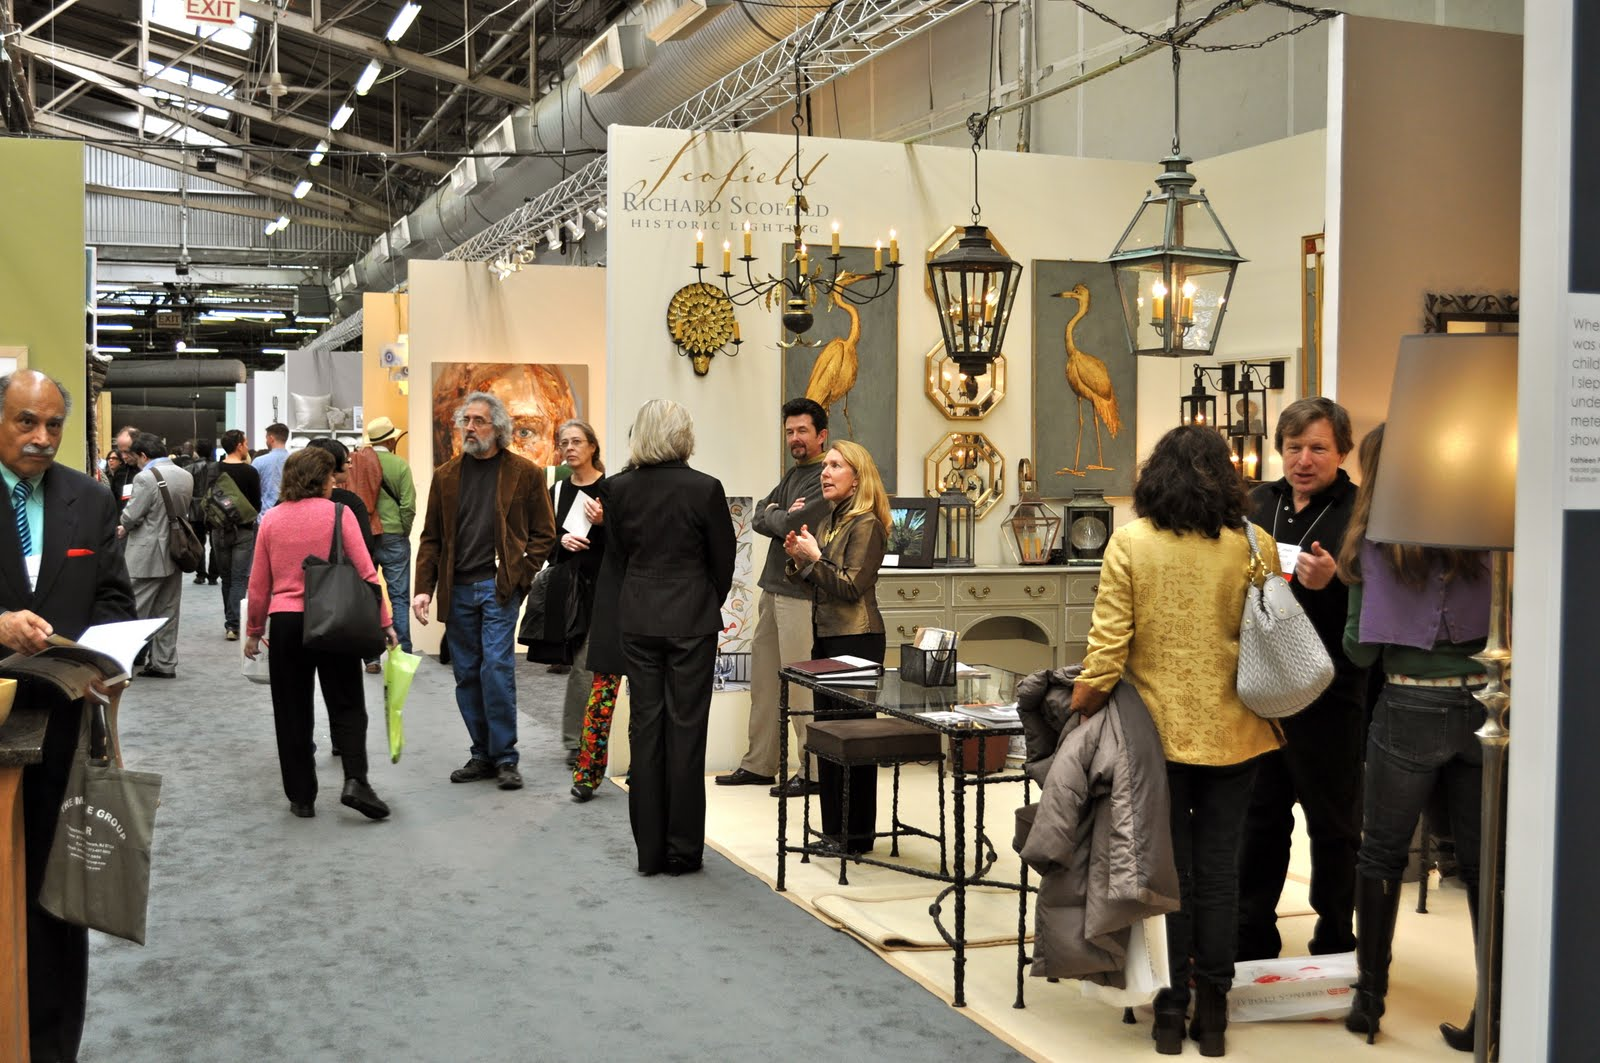 The showroom scofield historic lighting architectural for Architectural digest show